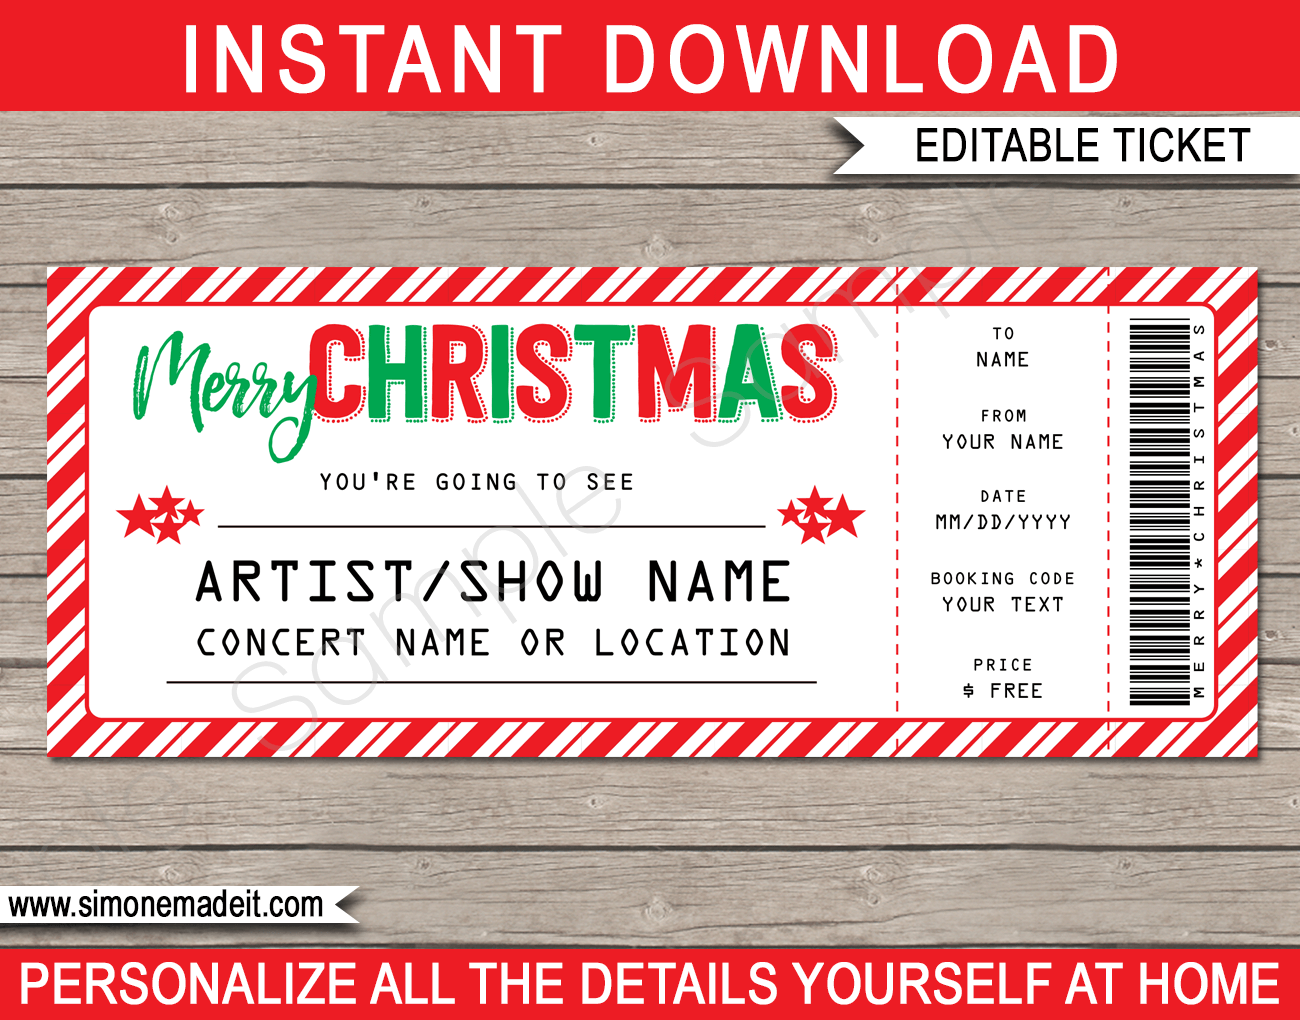 Concert Ticket Template Free Download Classy Christmas Gift Concert Ticket Template  Red Green & White .